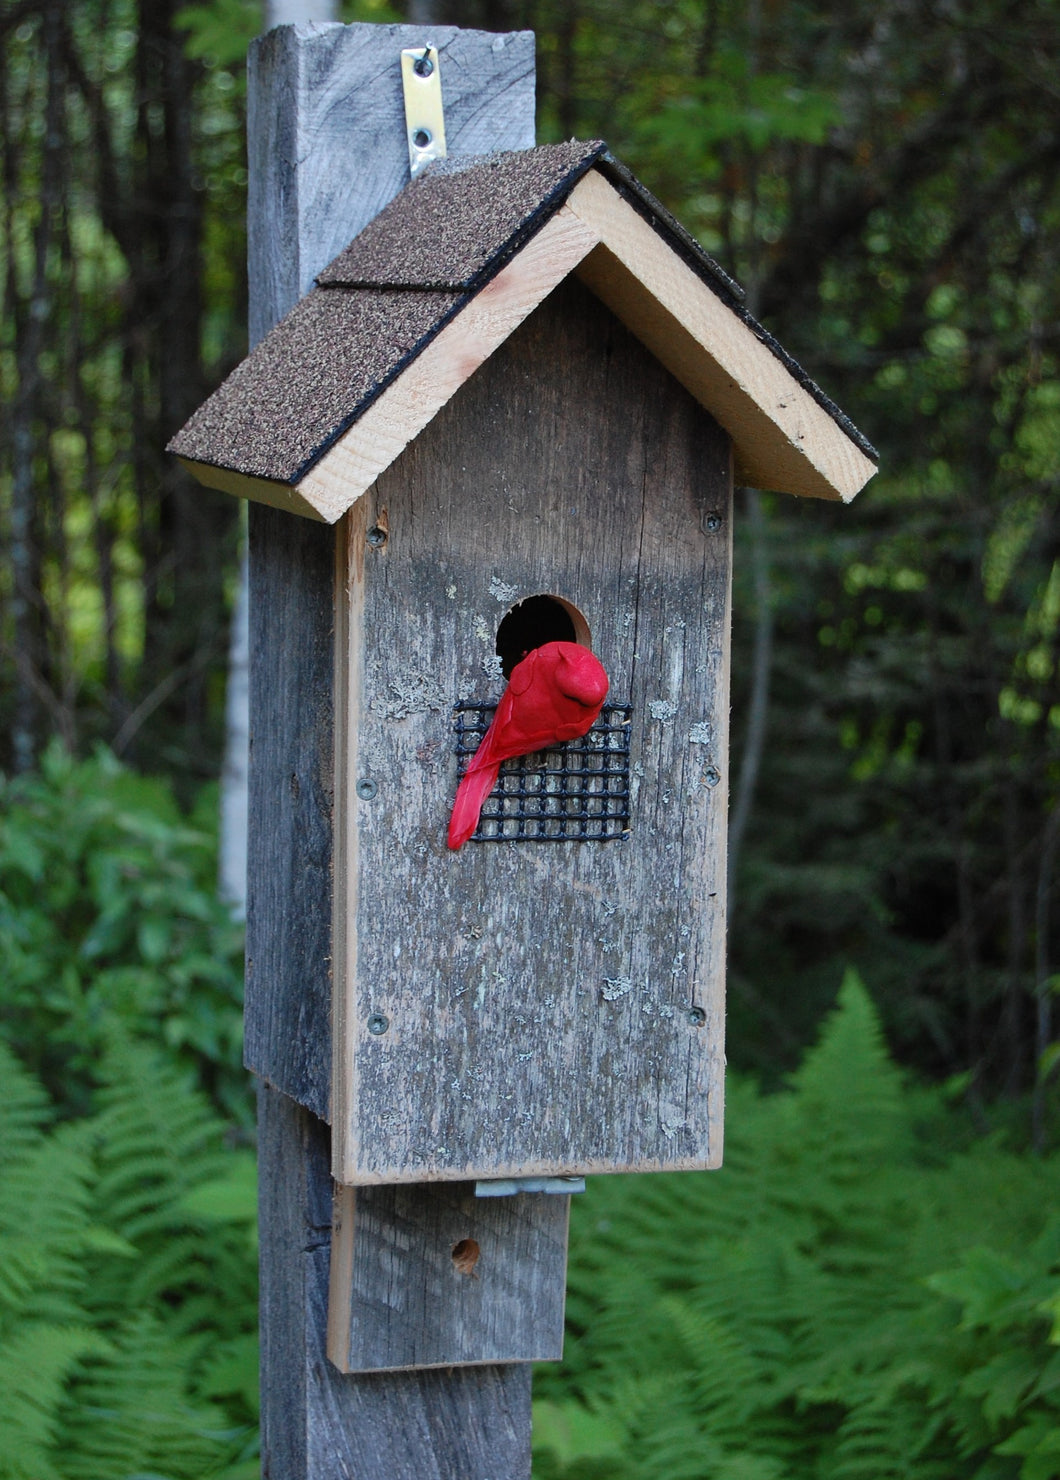 Barn Board Bird House - Limited Edition